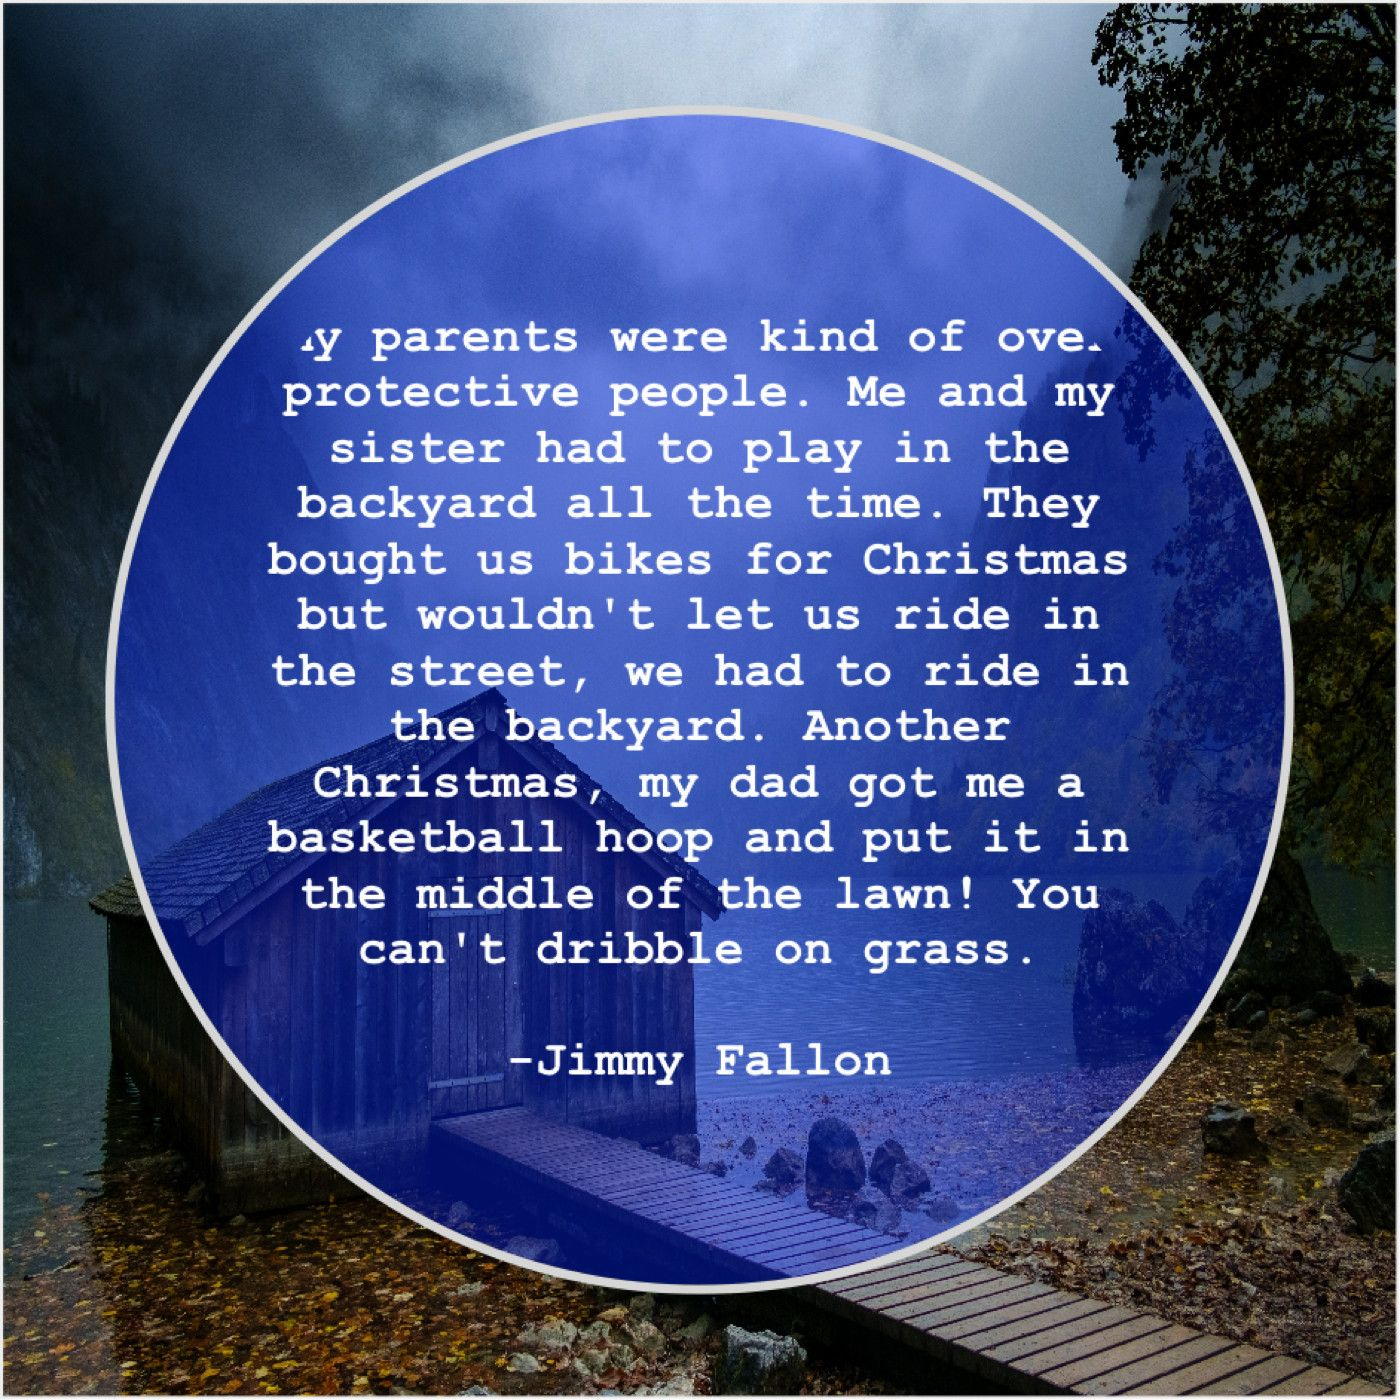 Jimmy Fallon My Parents Were Kind Of My Parents Were Kind Of Over